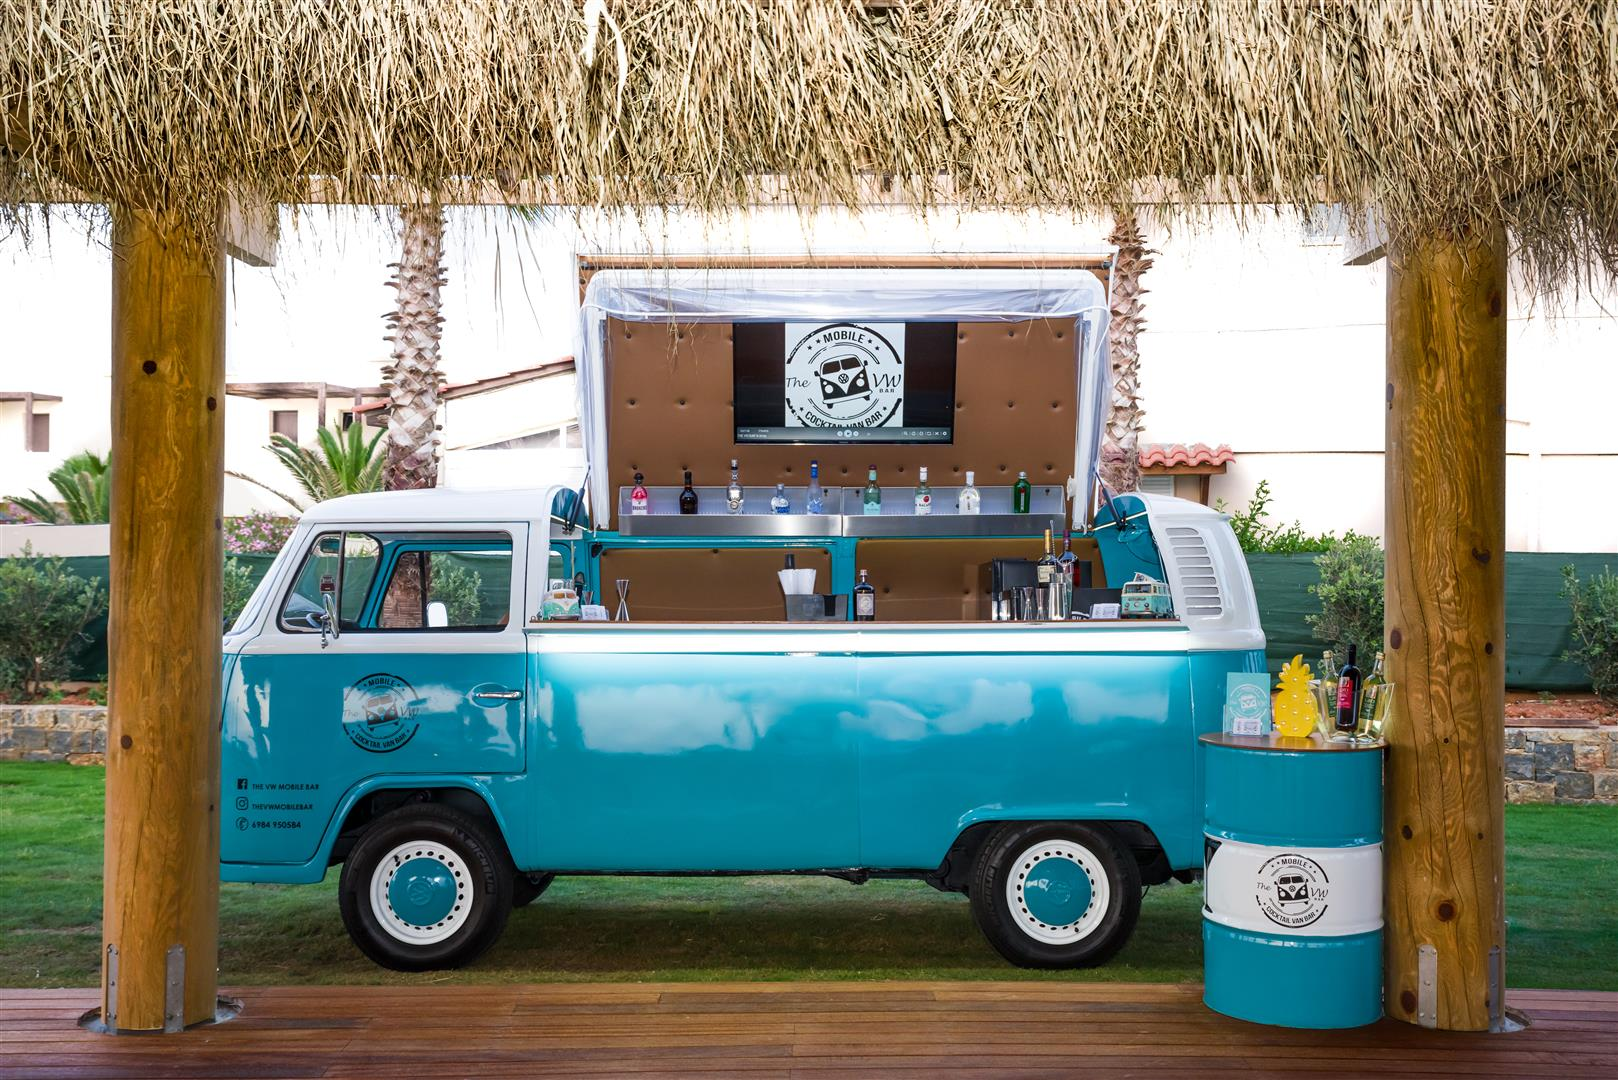 The Vw Mobile Bar The First Mobile Bar In Crete